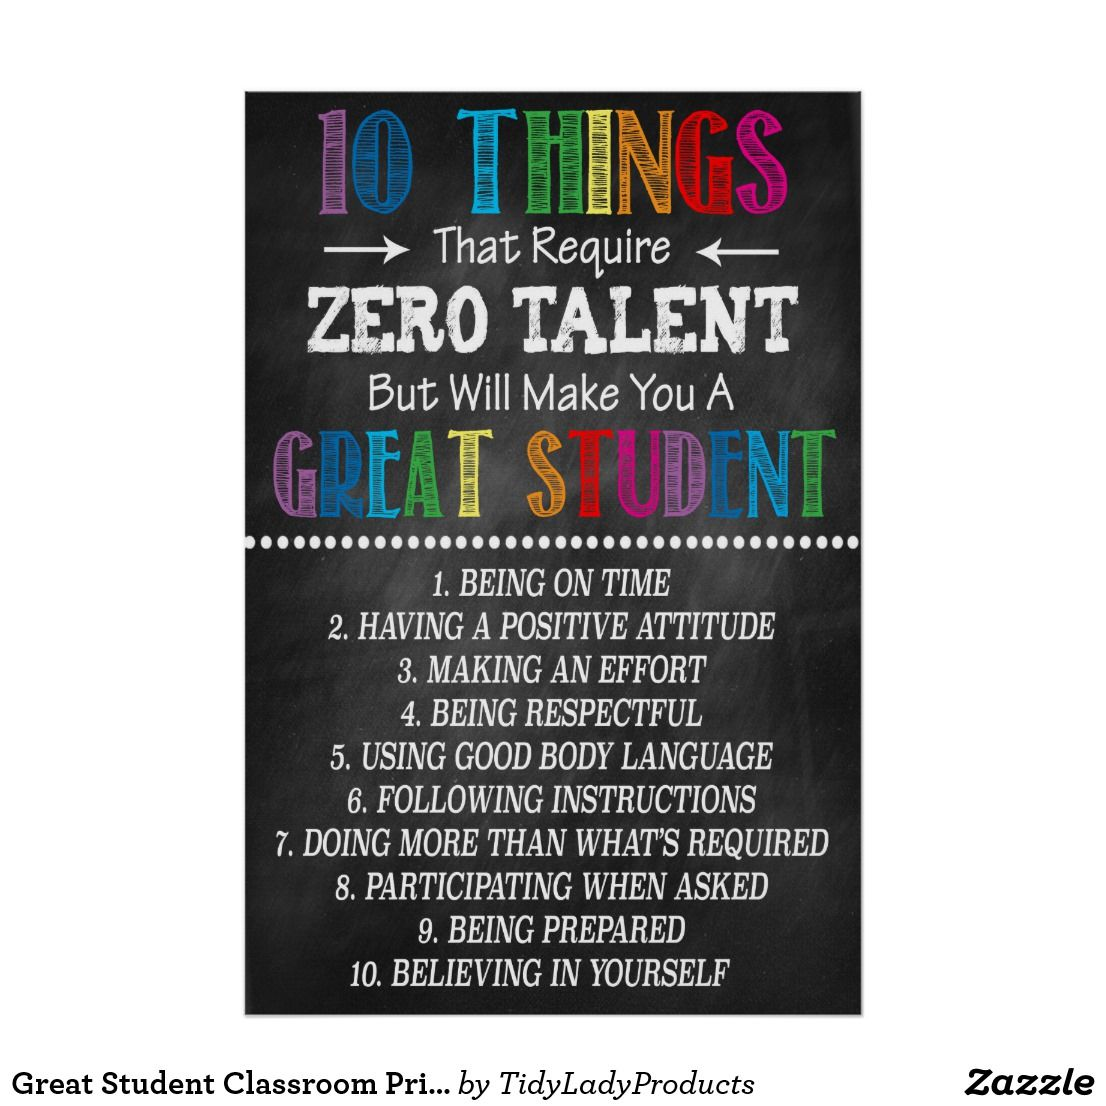 Great Student Classroom Printable Poster | Zazzle.com